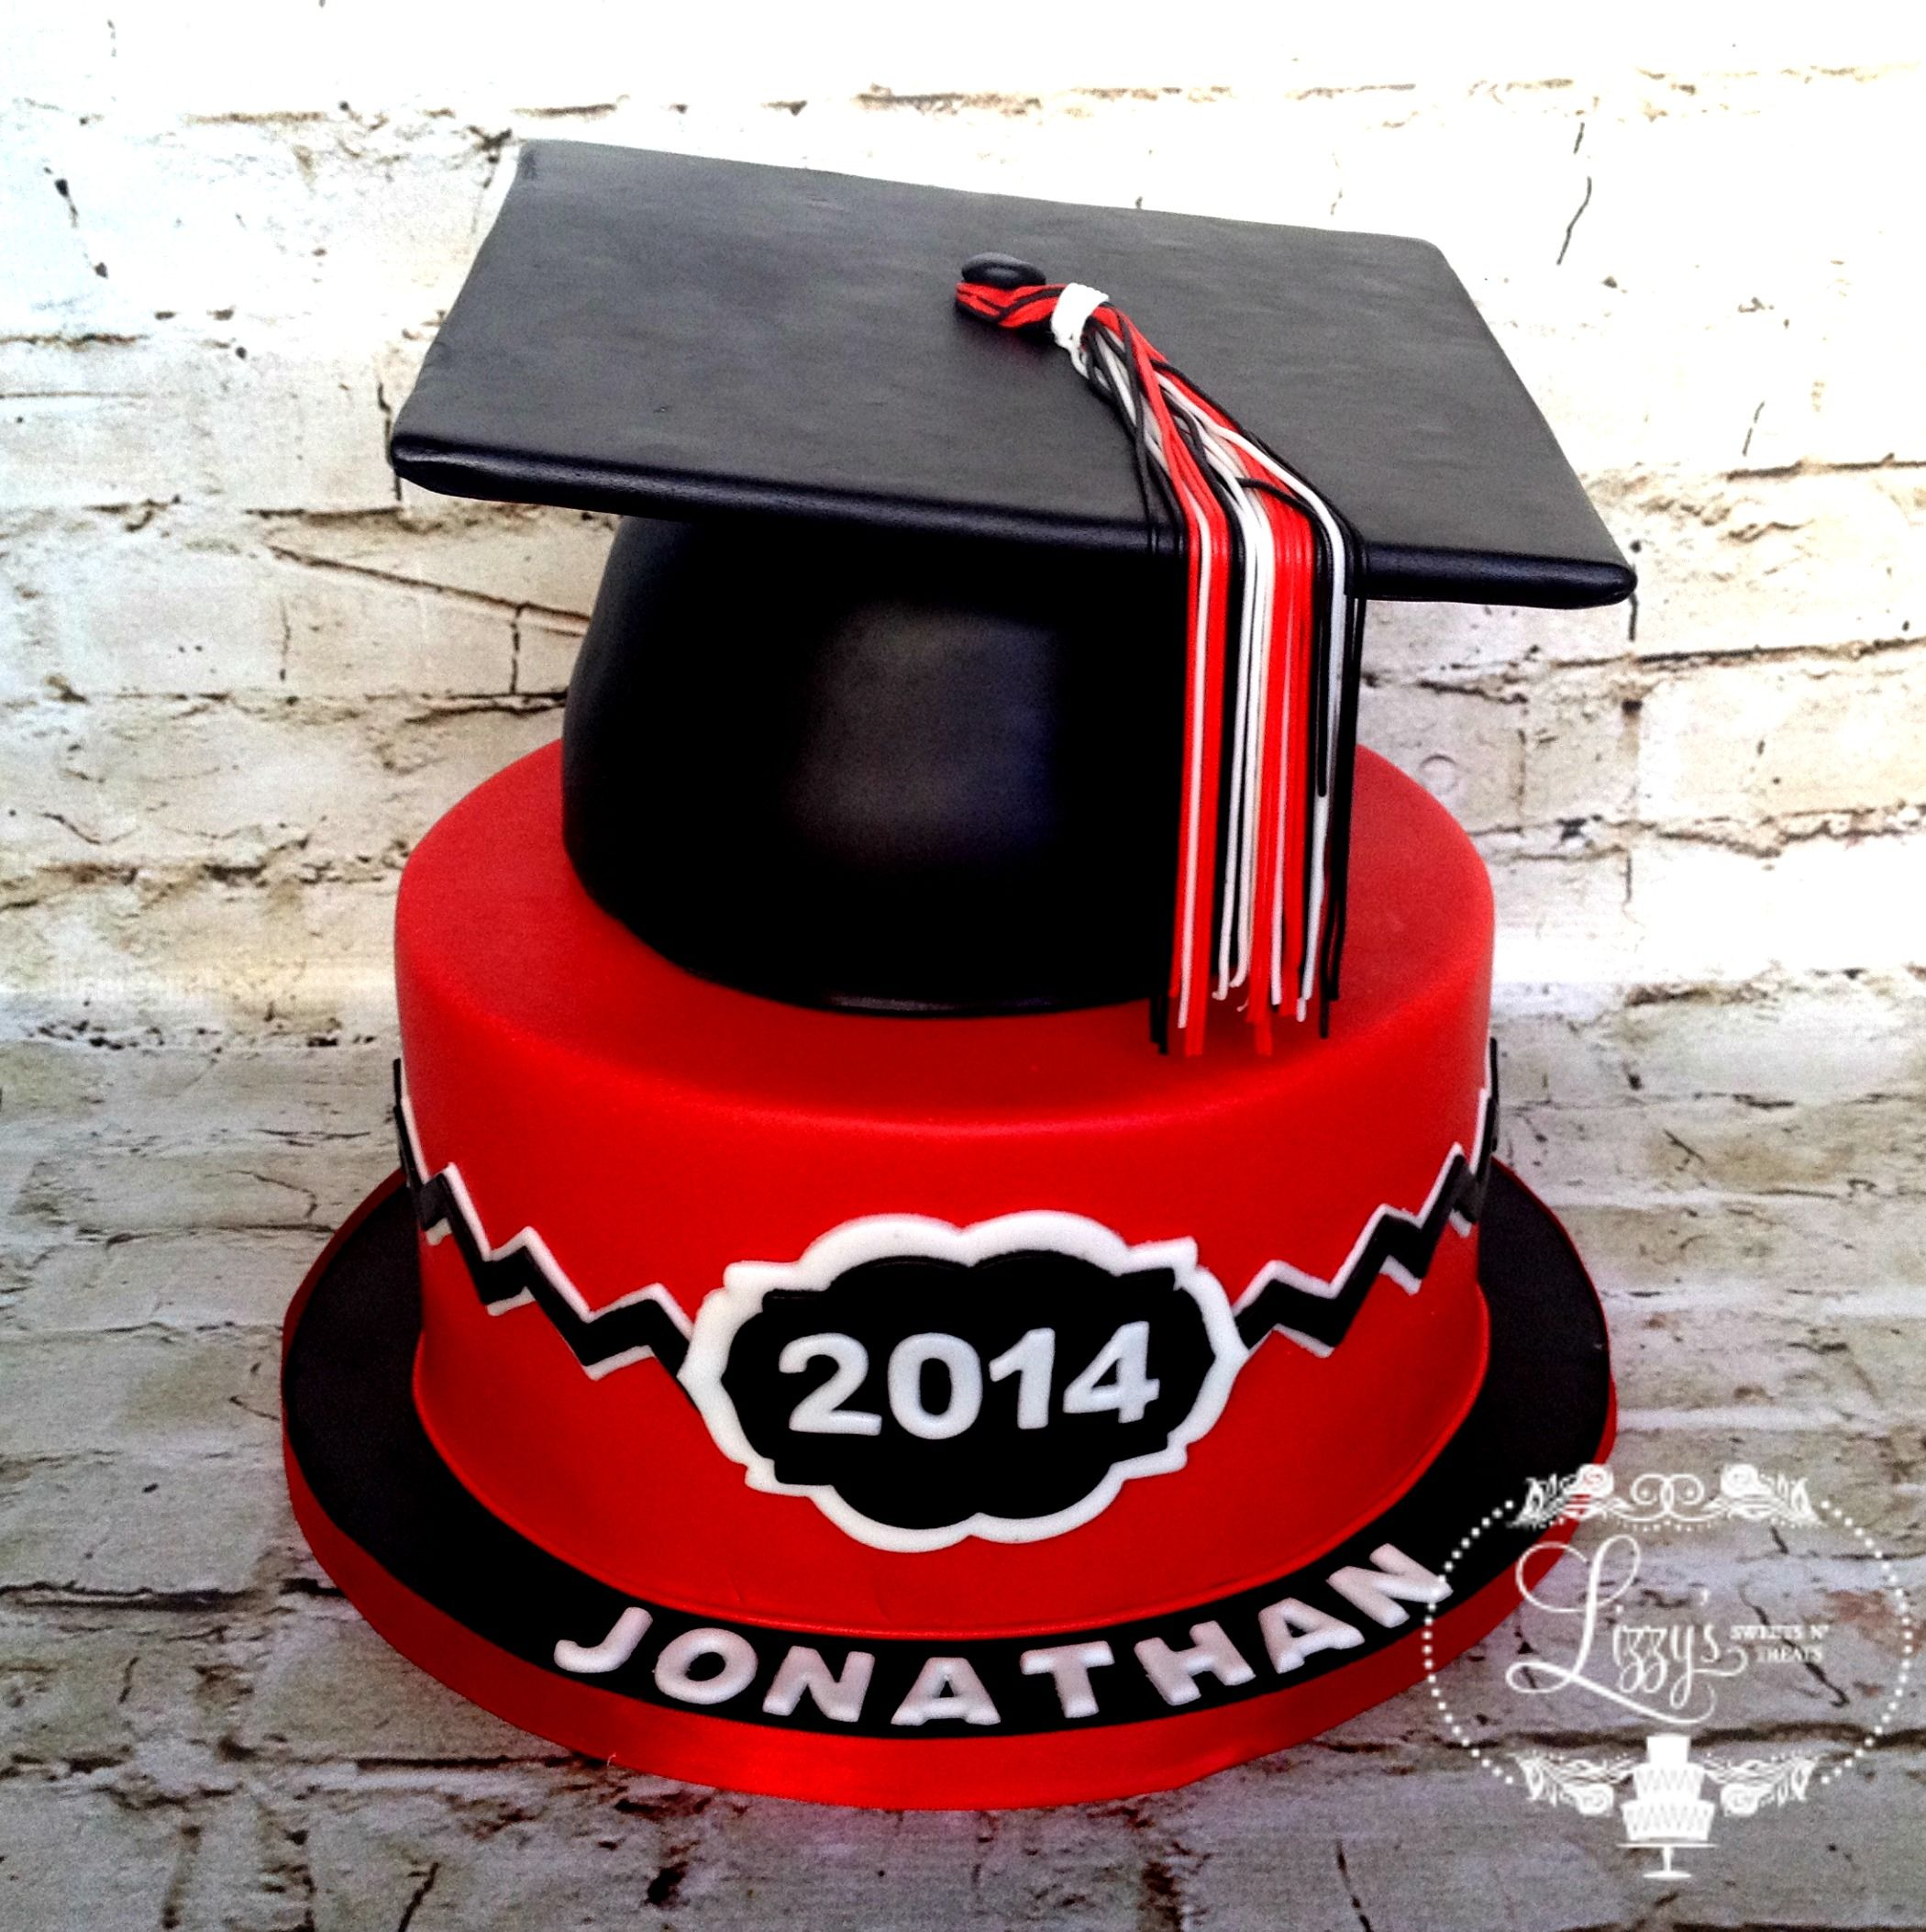 Cakes For Graduations With A Red Cap